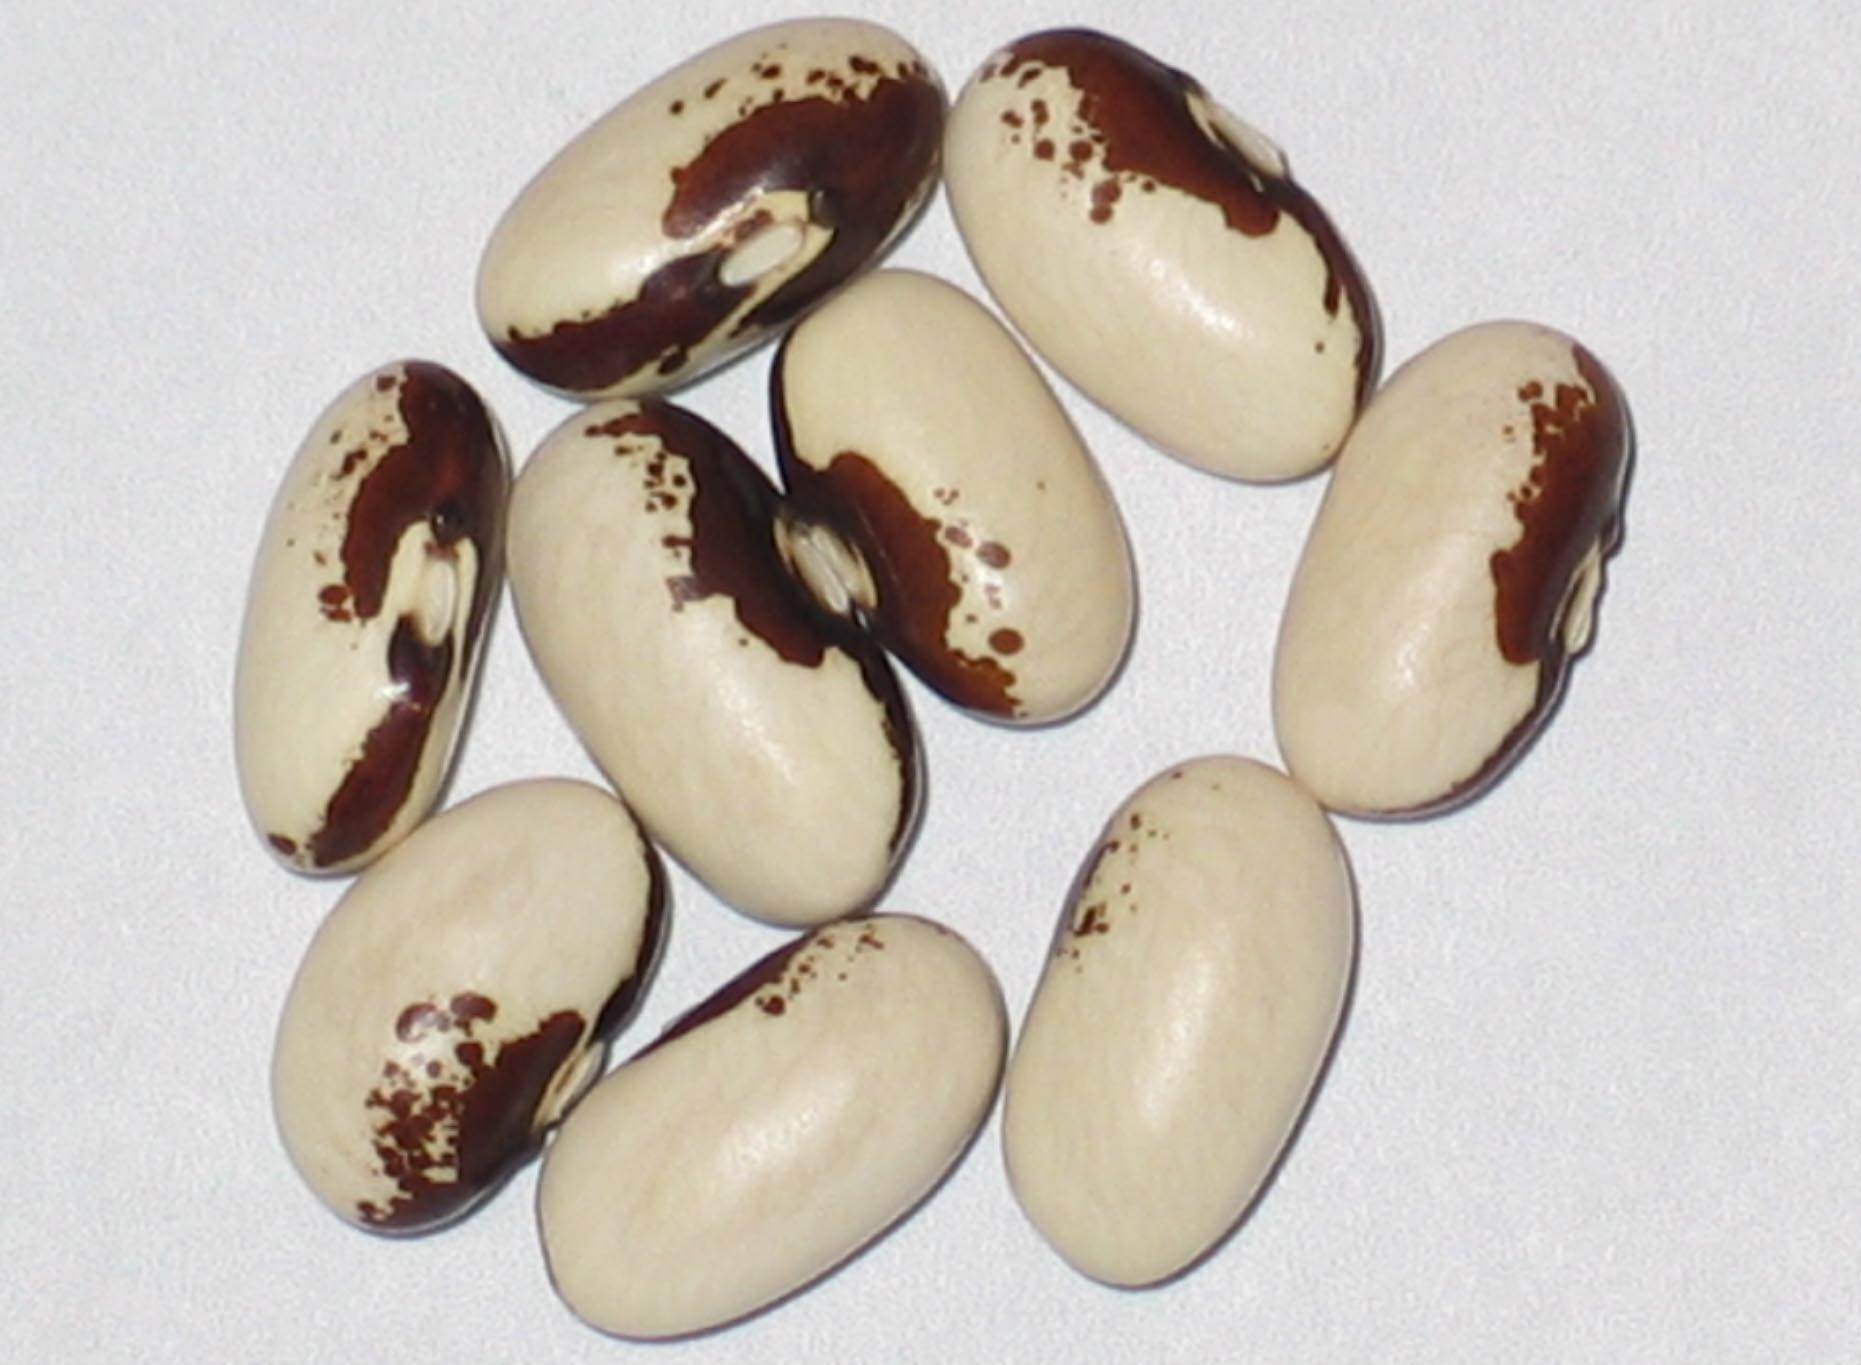 image of Moon beans